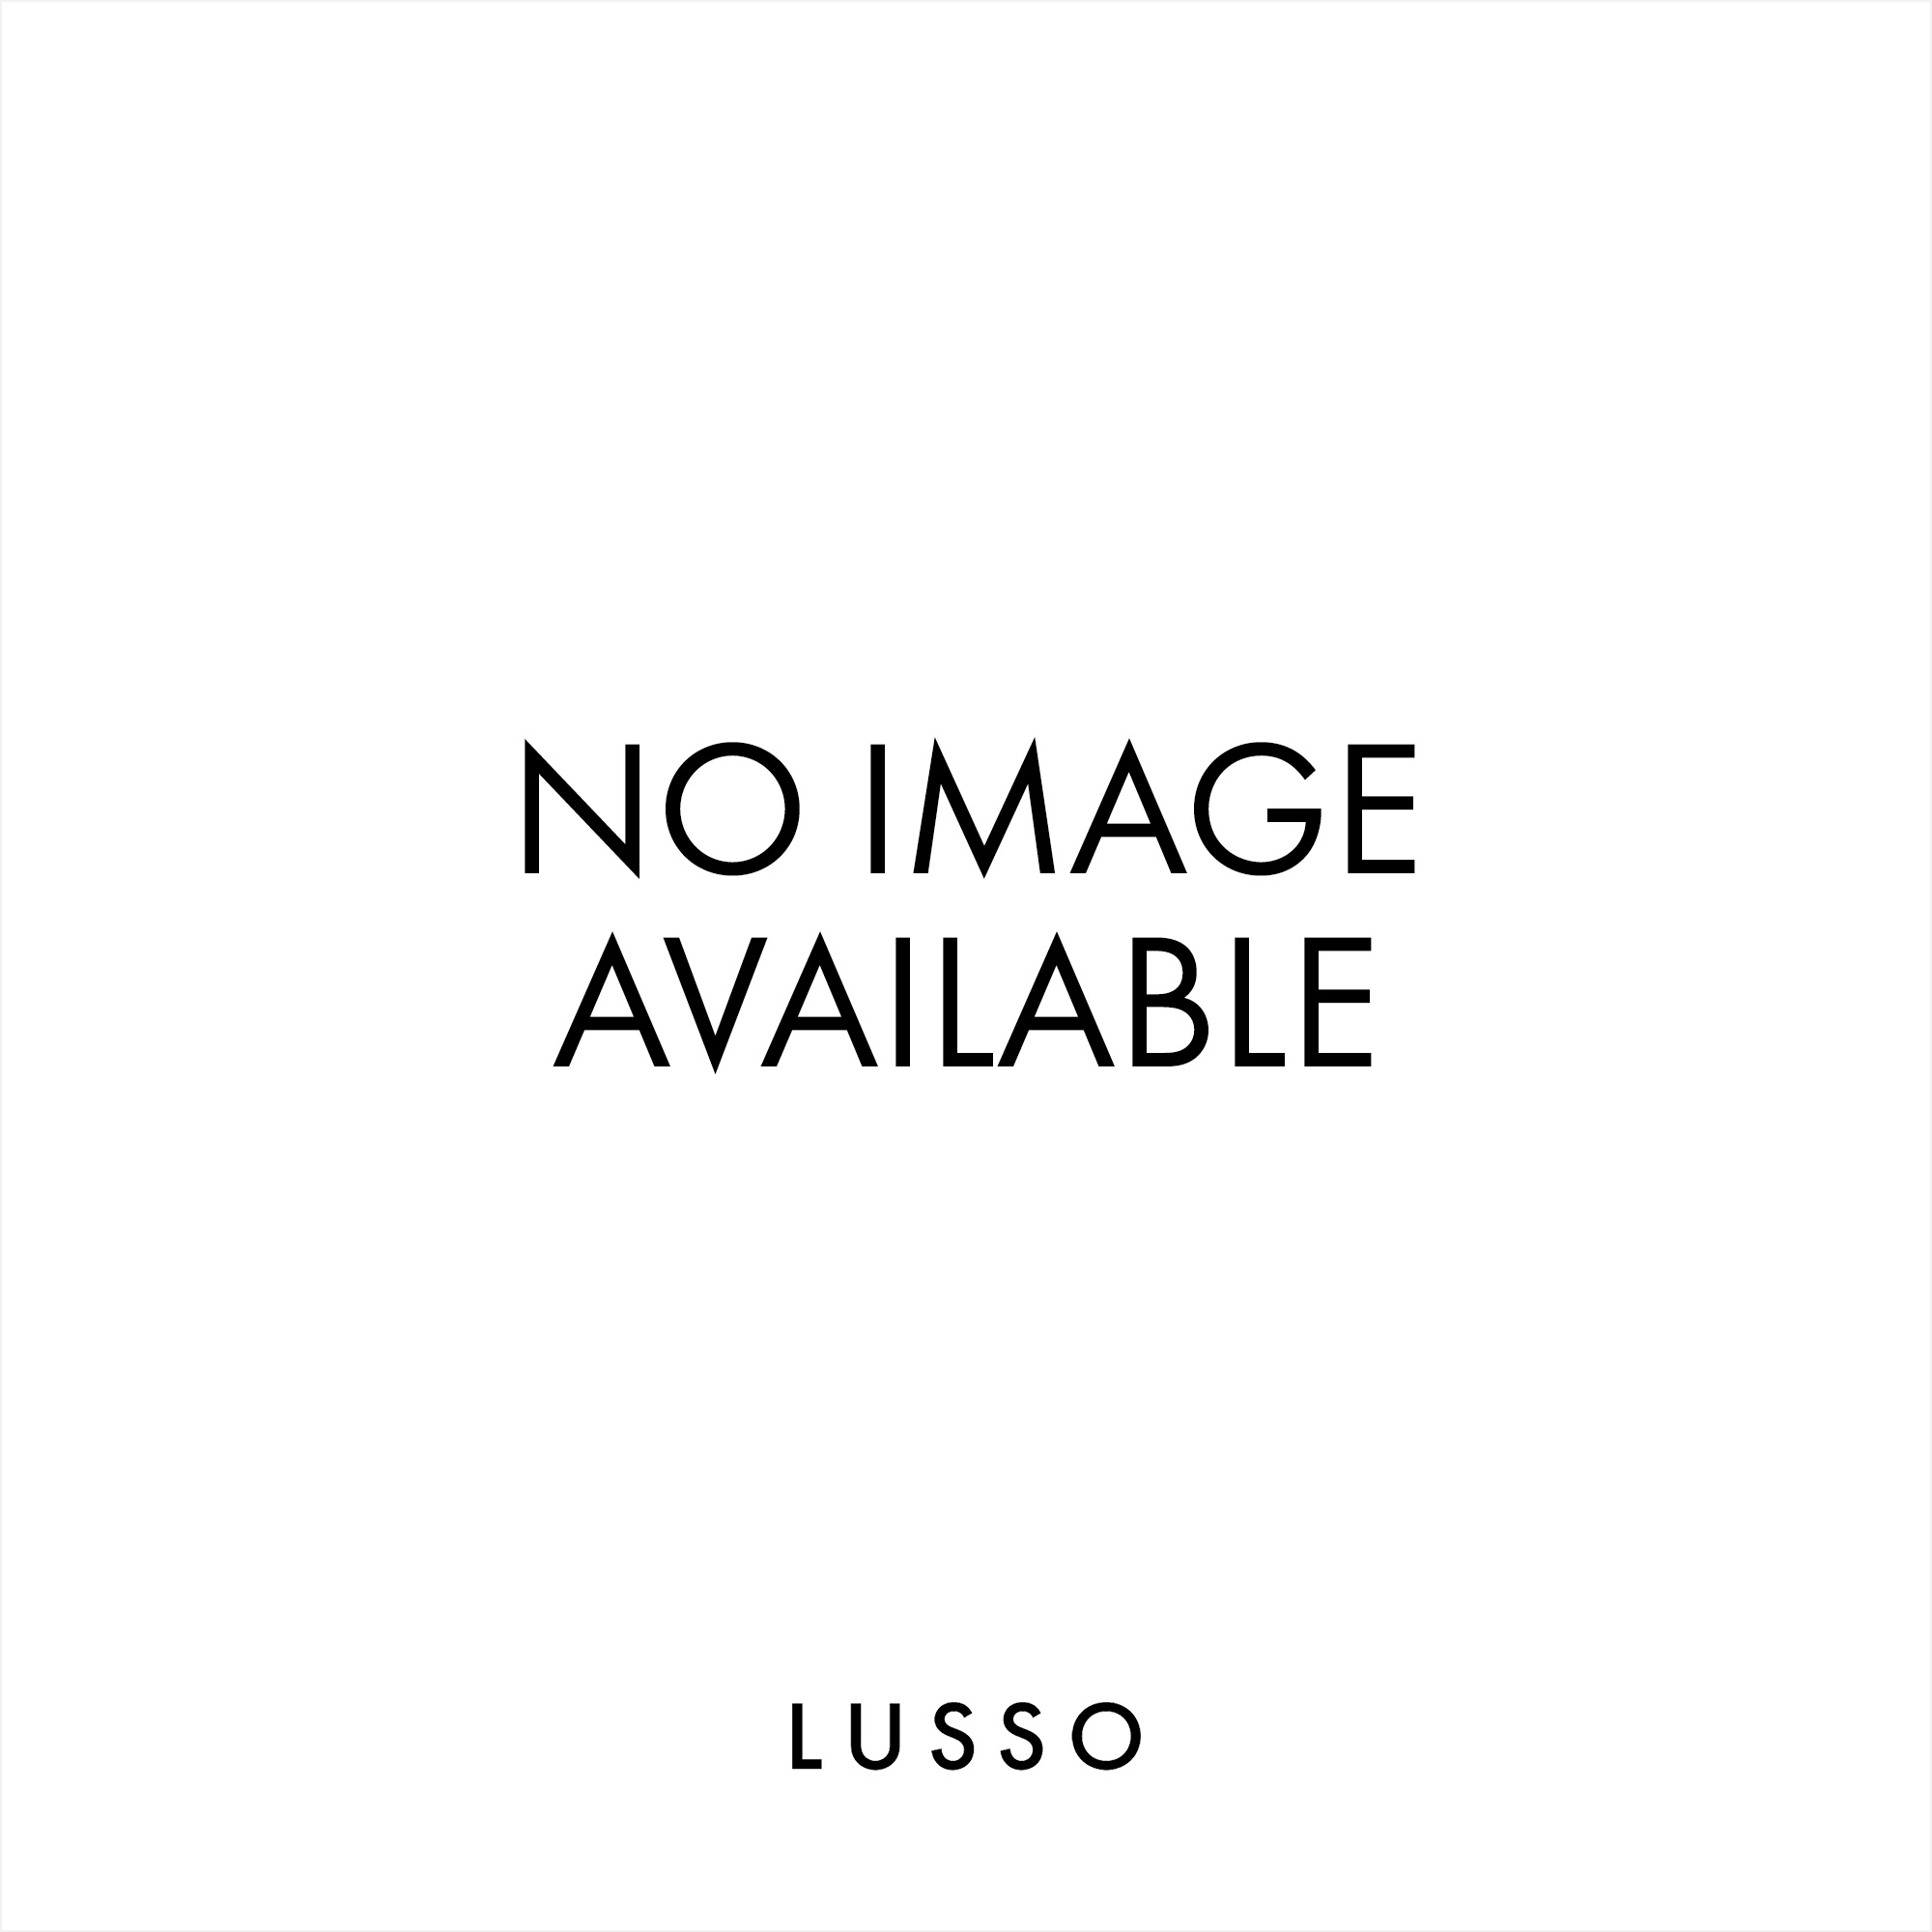 Luxury bathroom vanity units lusso stone - Designer wall hung bathroom vanity units ...